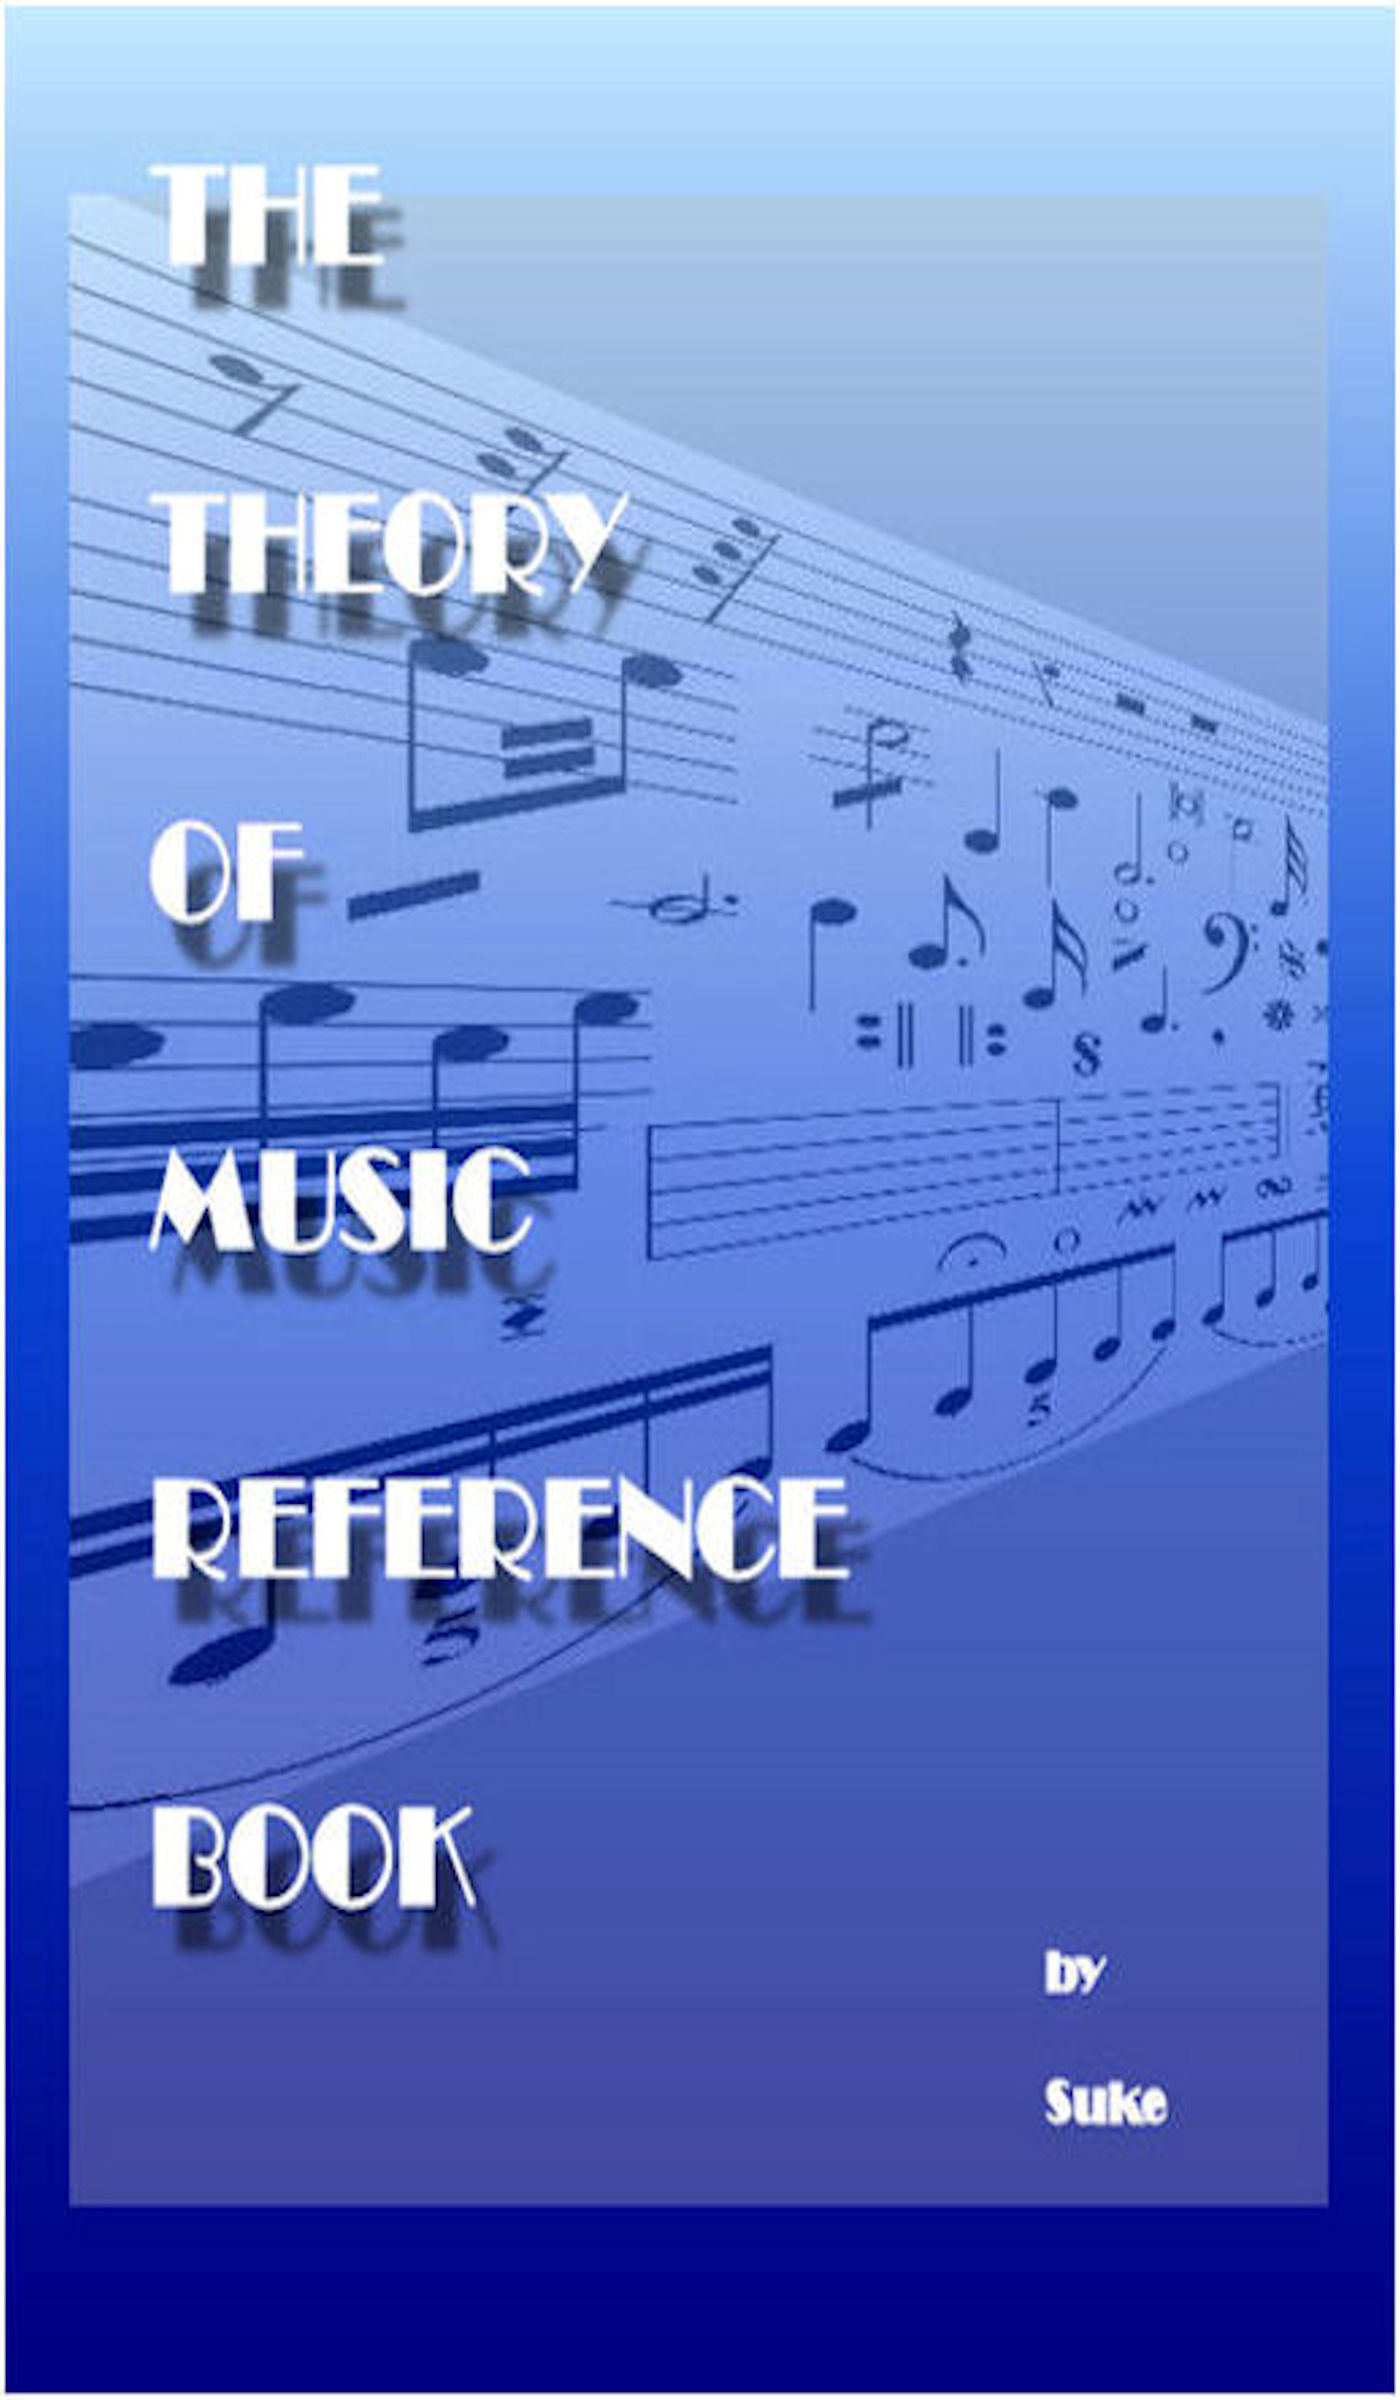 The Theory of Music Reference Book